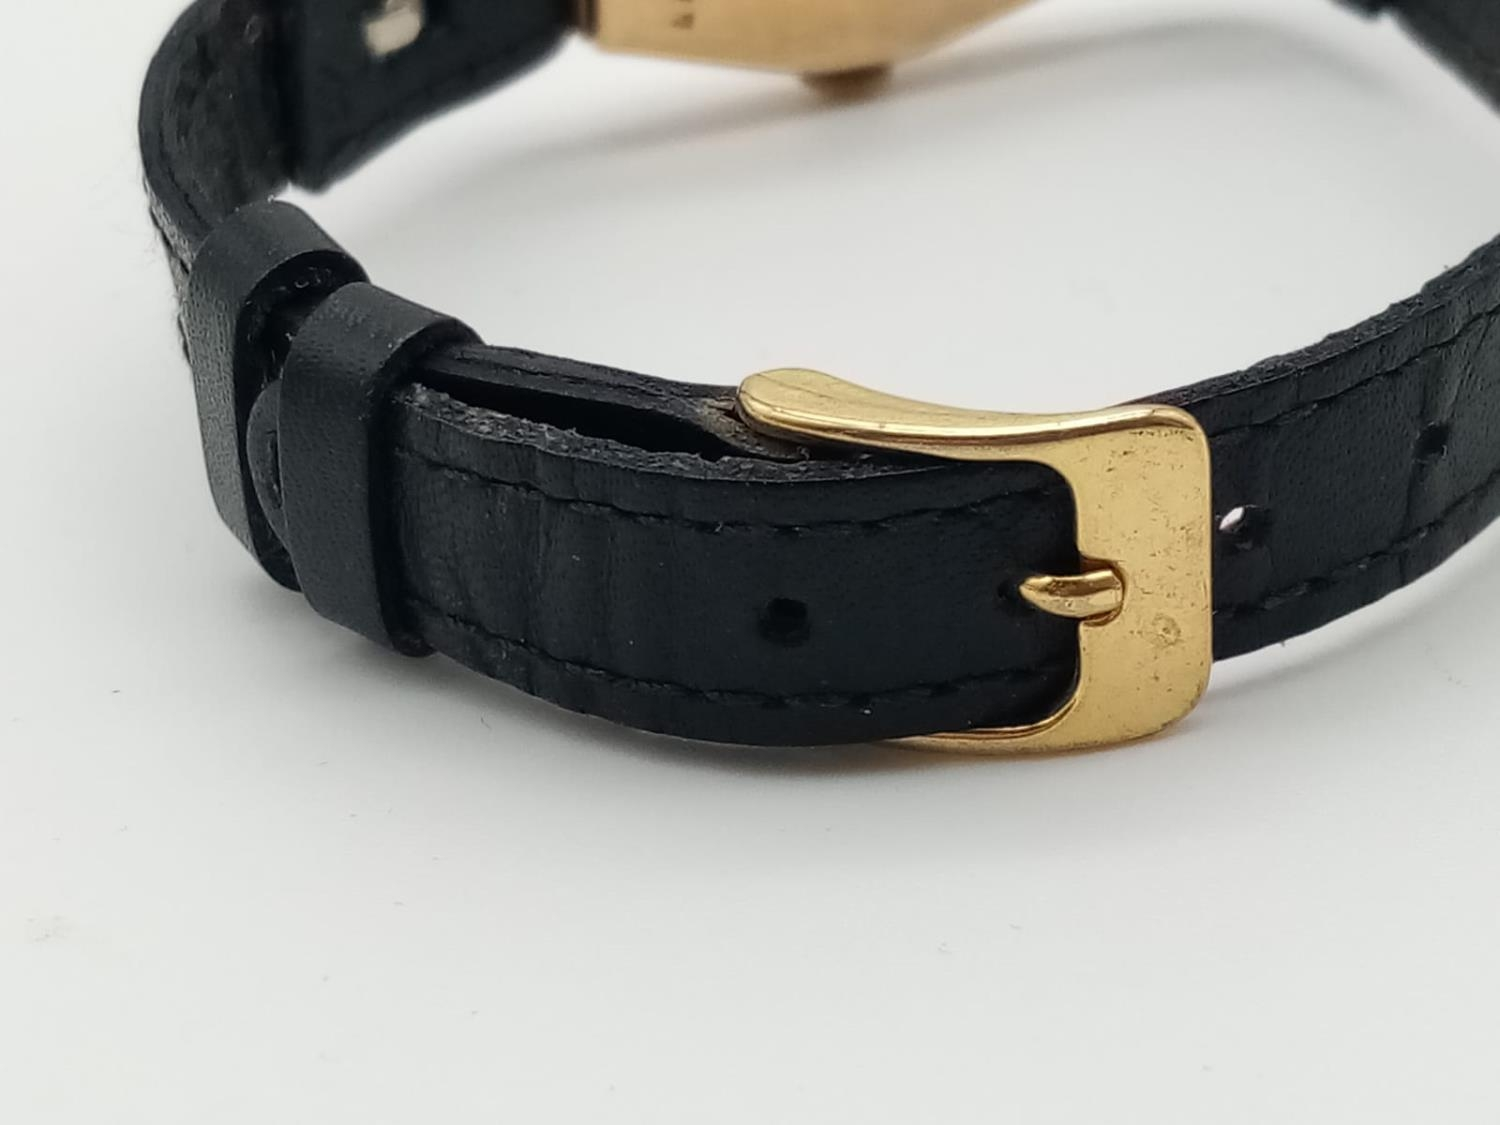 VINTAGE ROLEX 9K GOLD LADIES WRIST WATCH ON LEATHER STRAP. 16MM FWO - Image 6 of 6